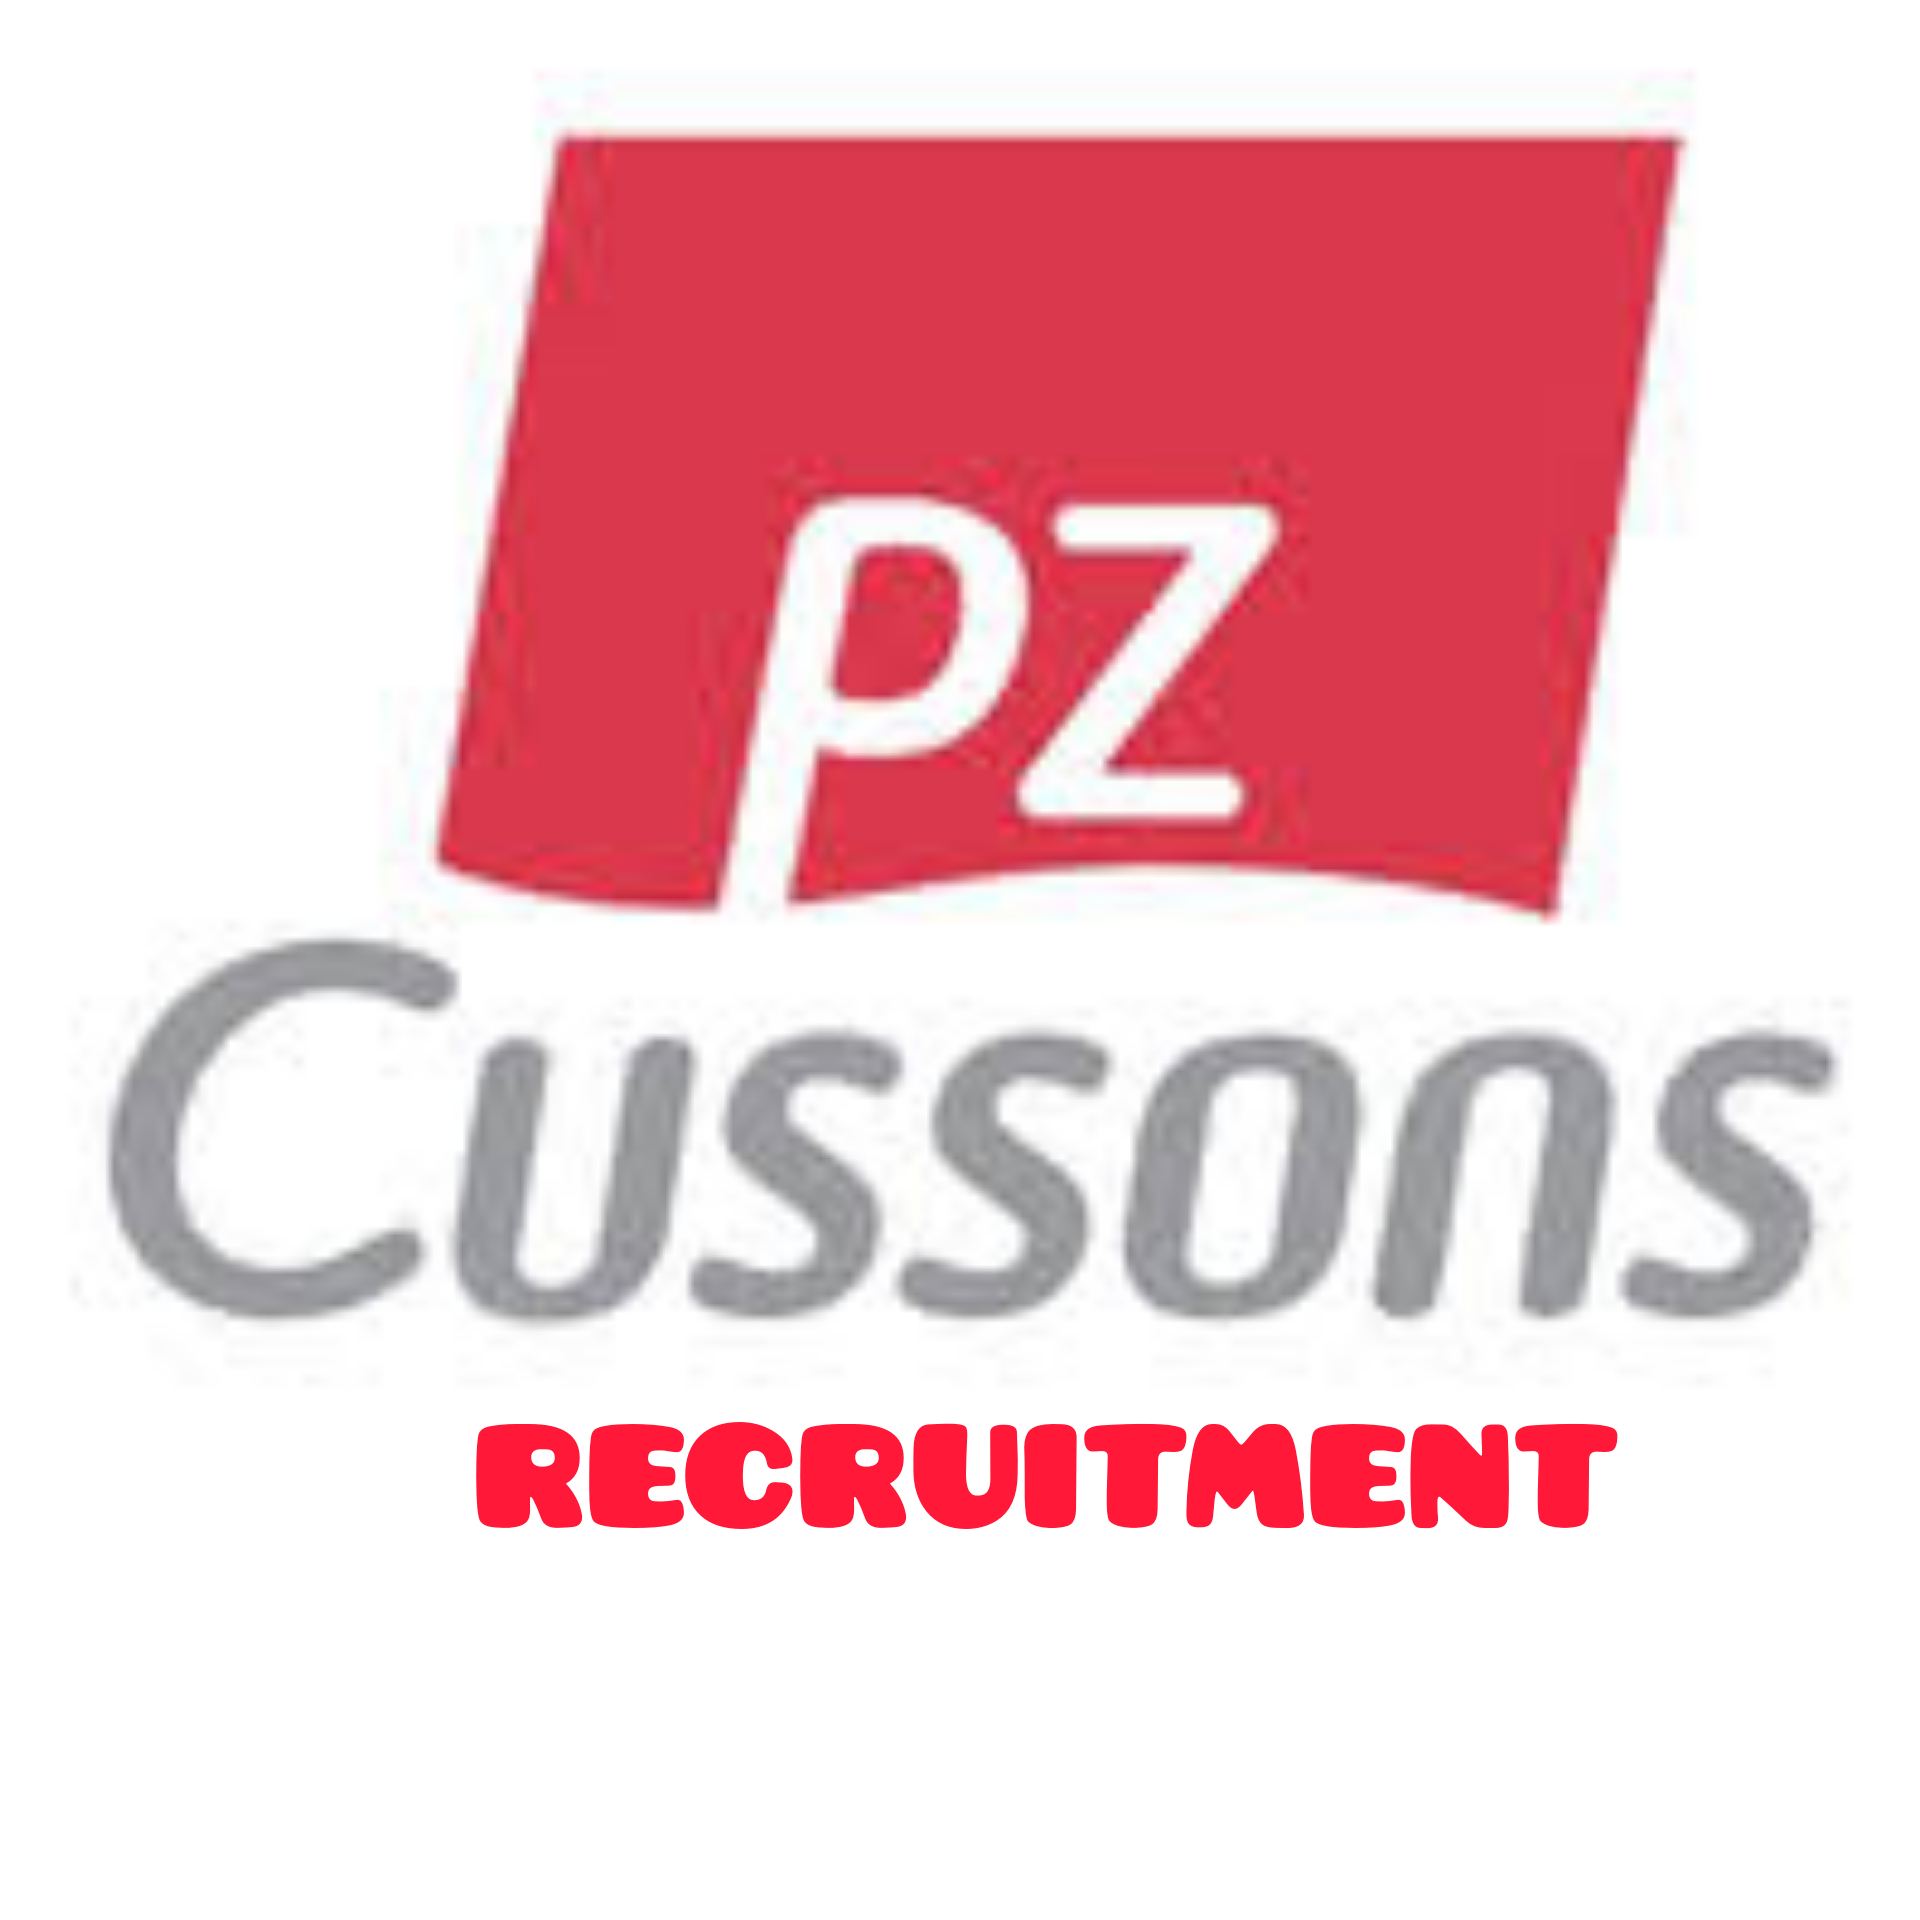 Site Controller at PZ Cussons